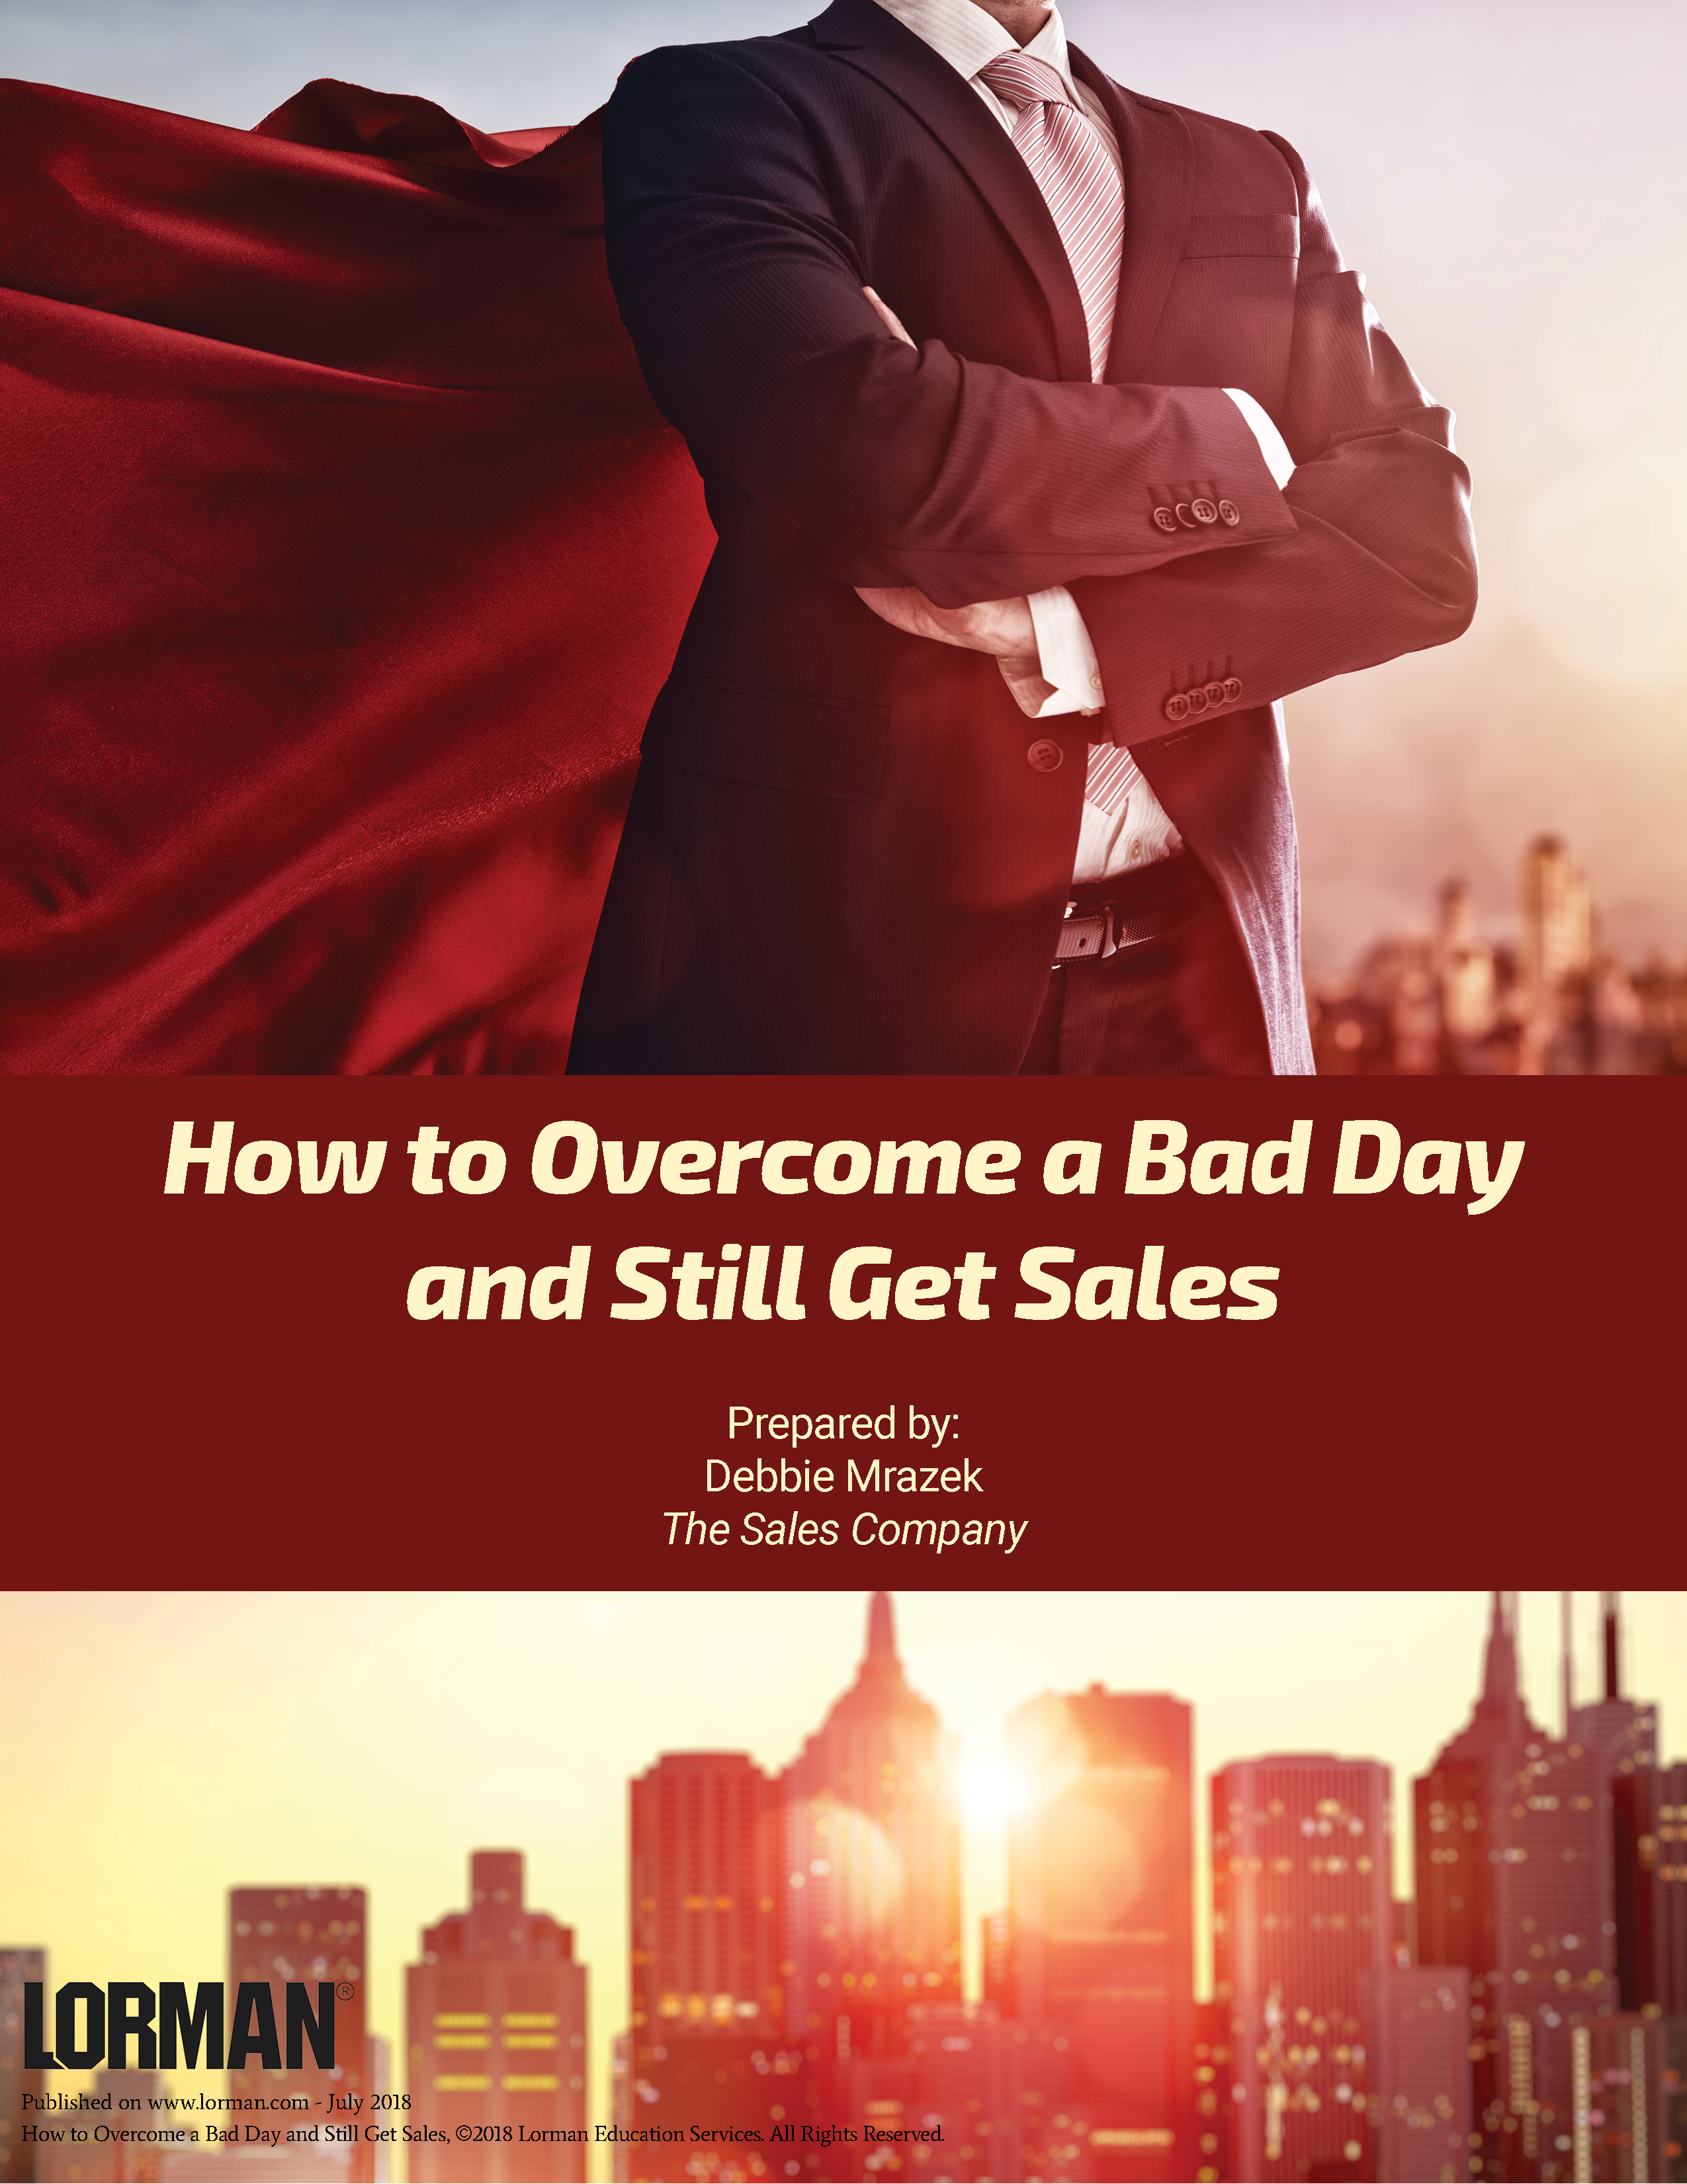 How to Overcome a Bad Day and Still Get Sales